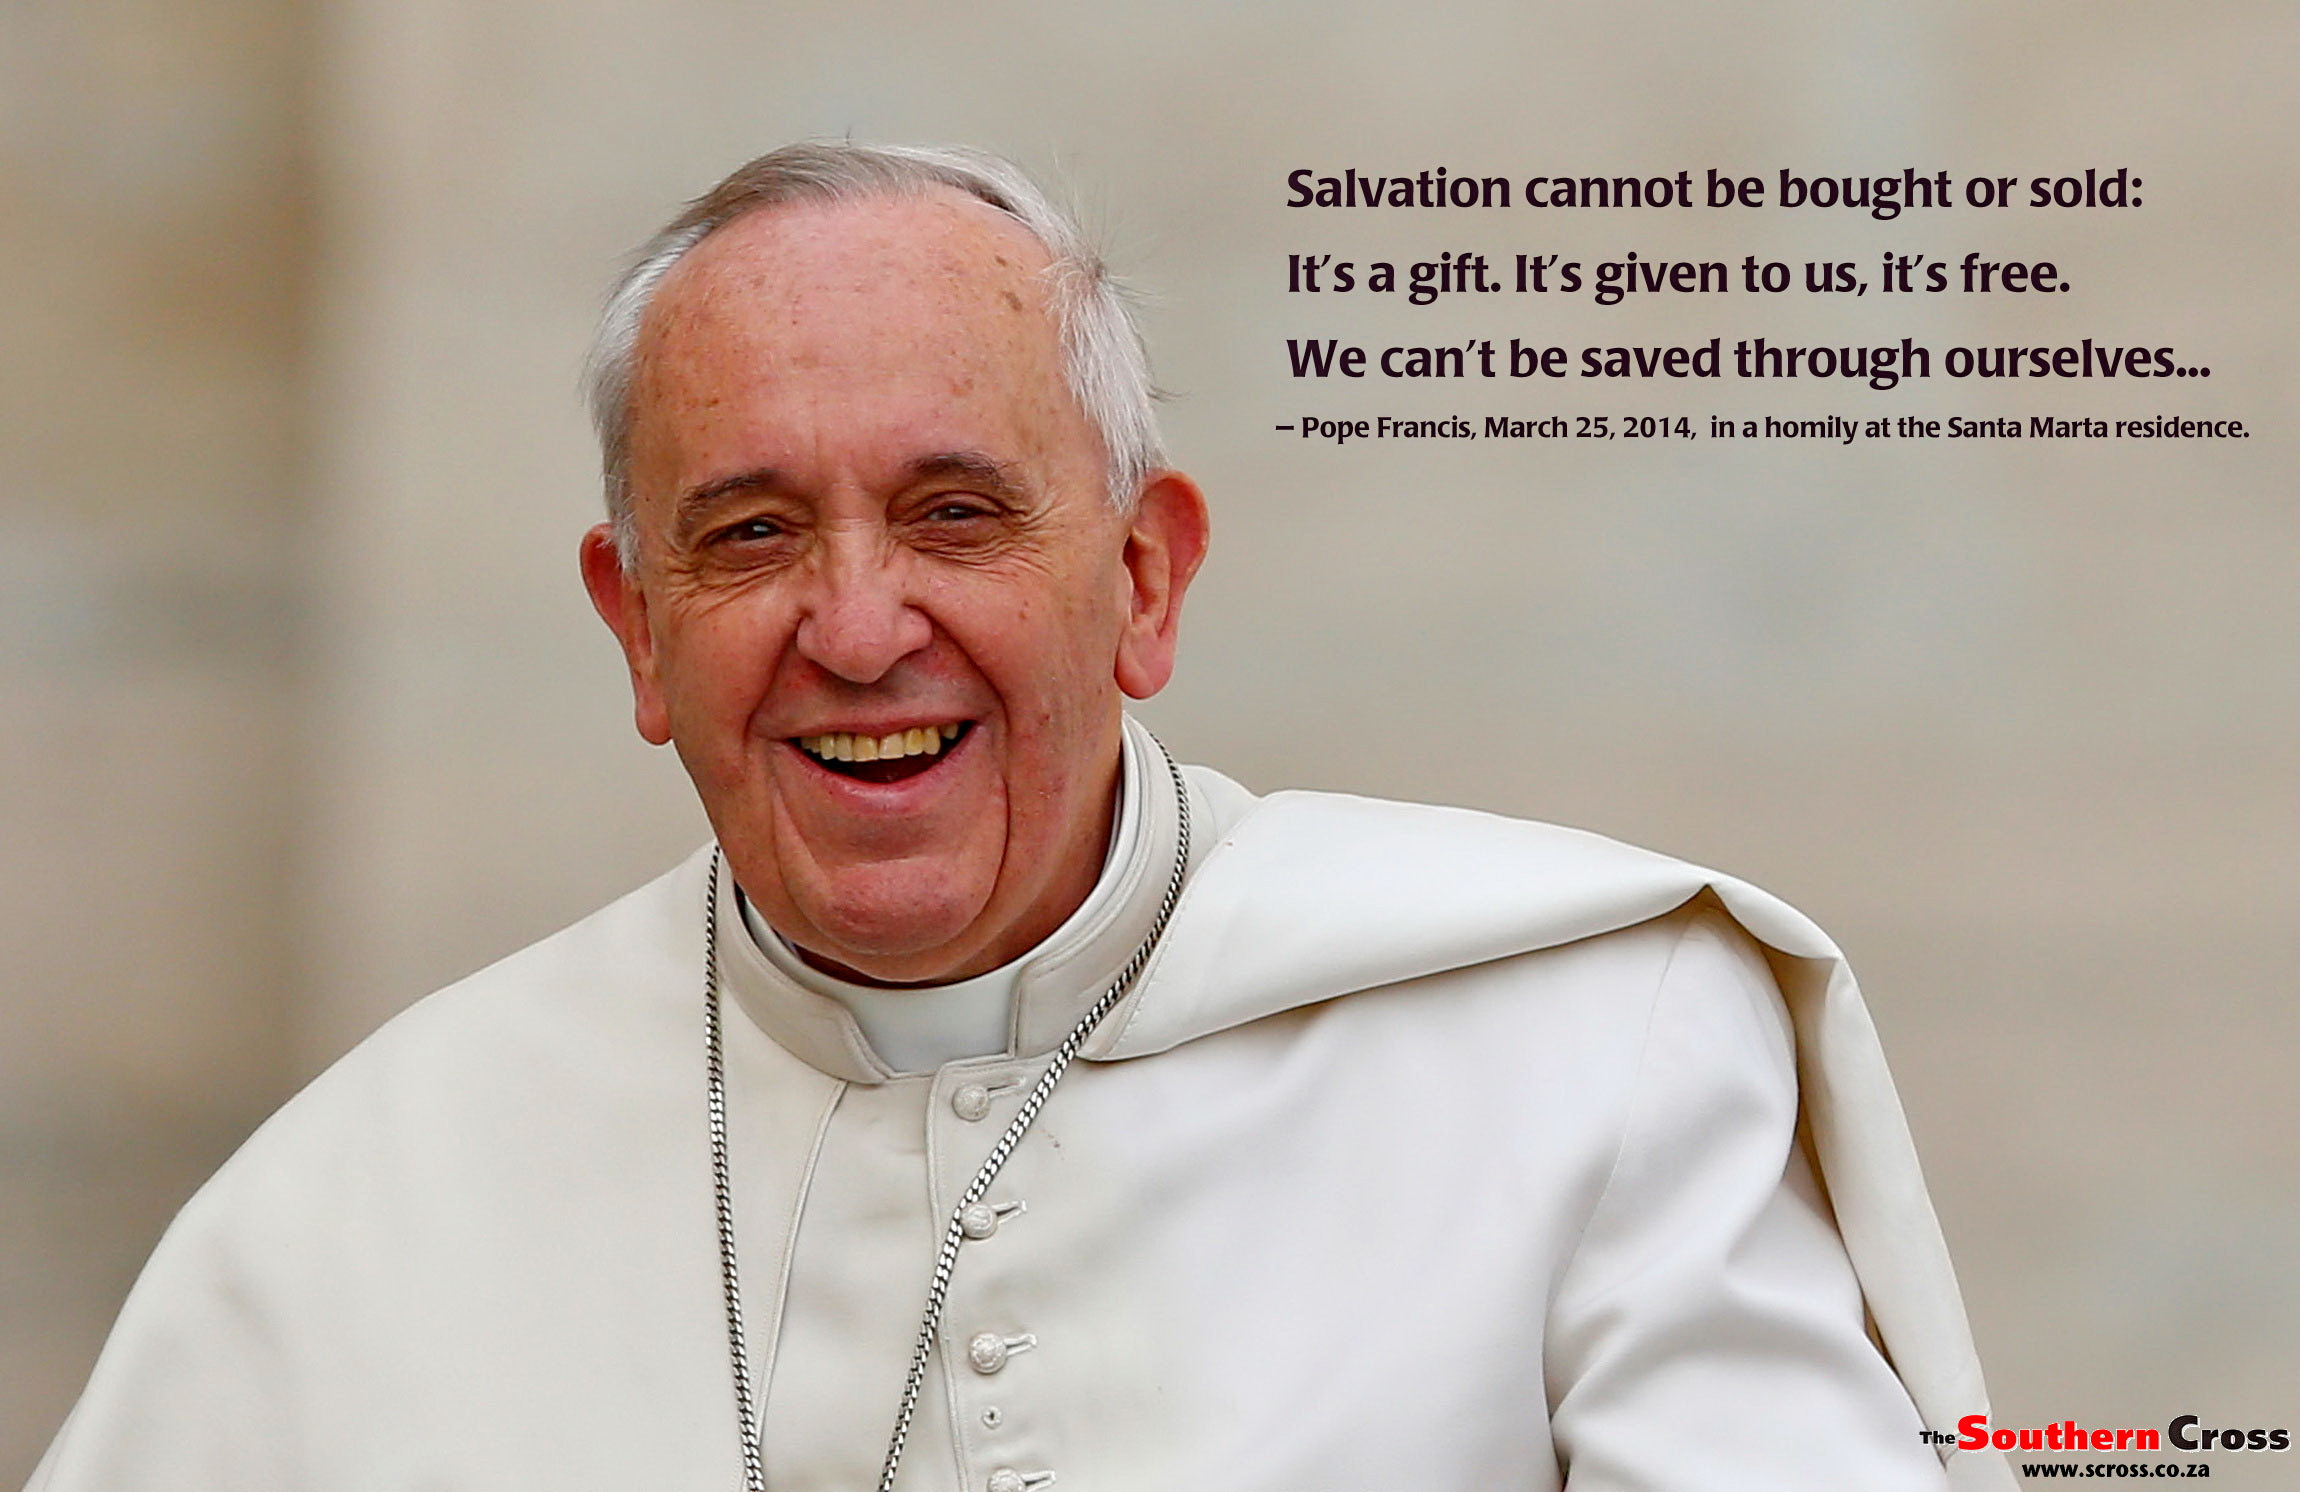 Pope Francis Wallpaper   Salvation   The Southern Cross 2300x1492